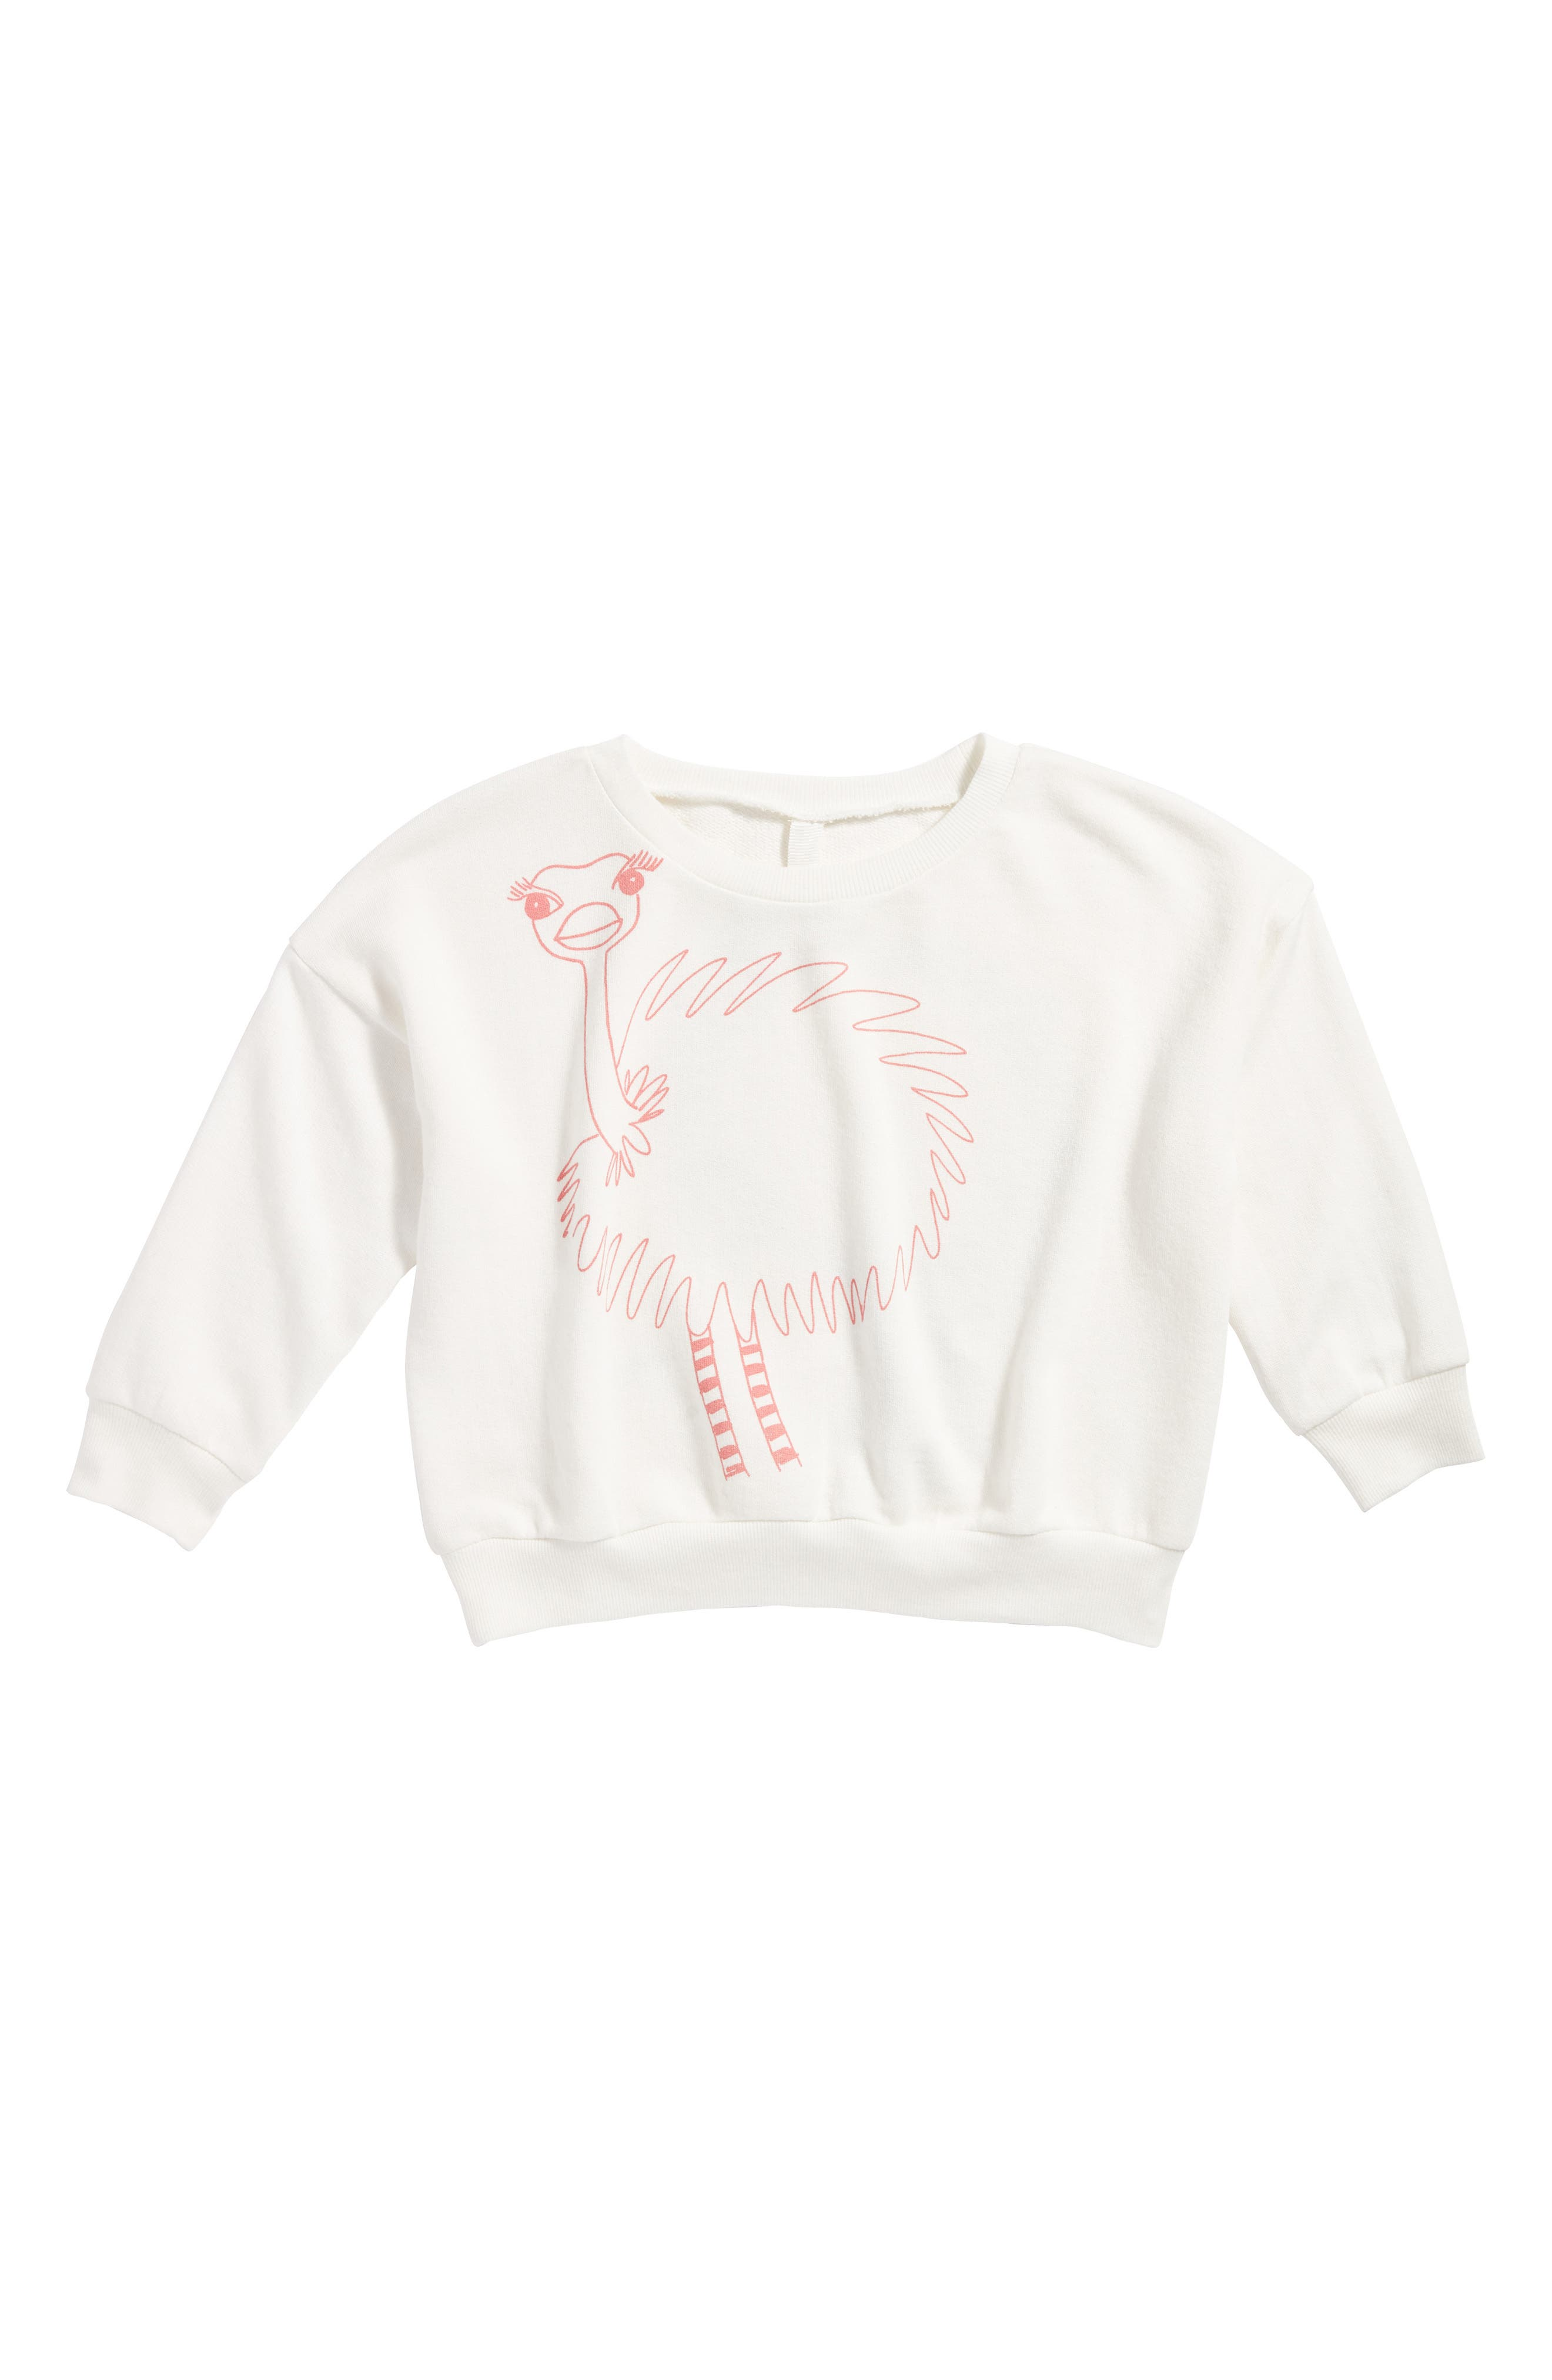 Main Image - Stem Ostrich Graphic Sweatshirt (Toddler Girls, Little Girls & Big Girls)